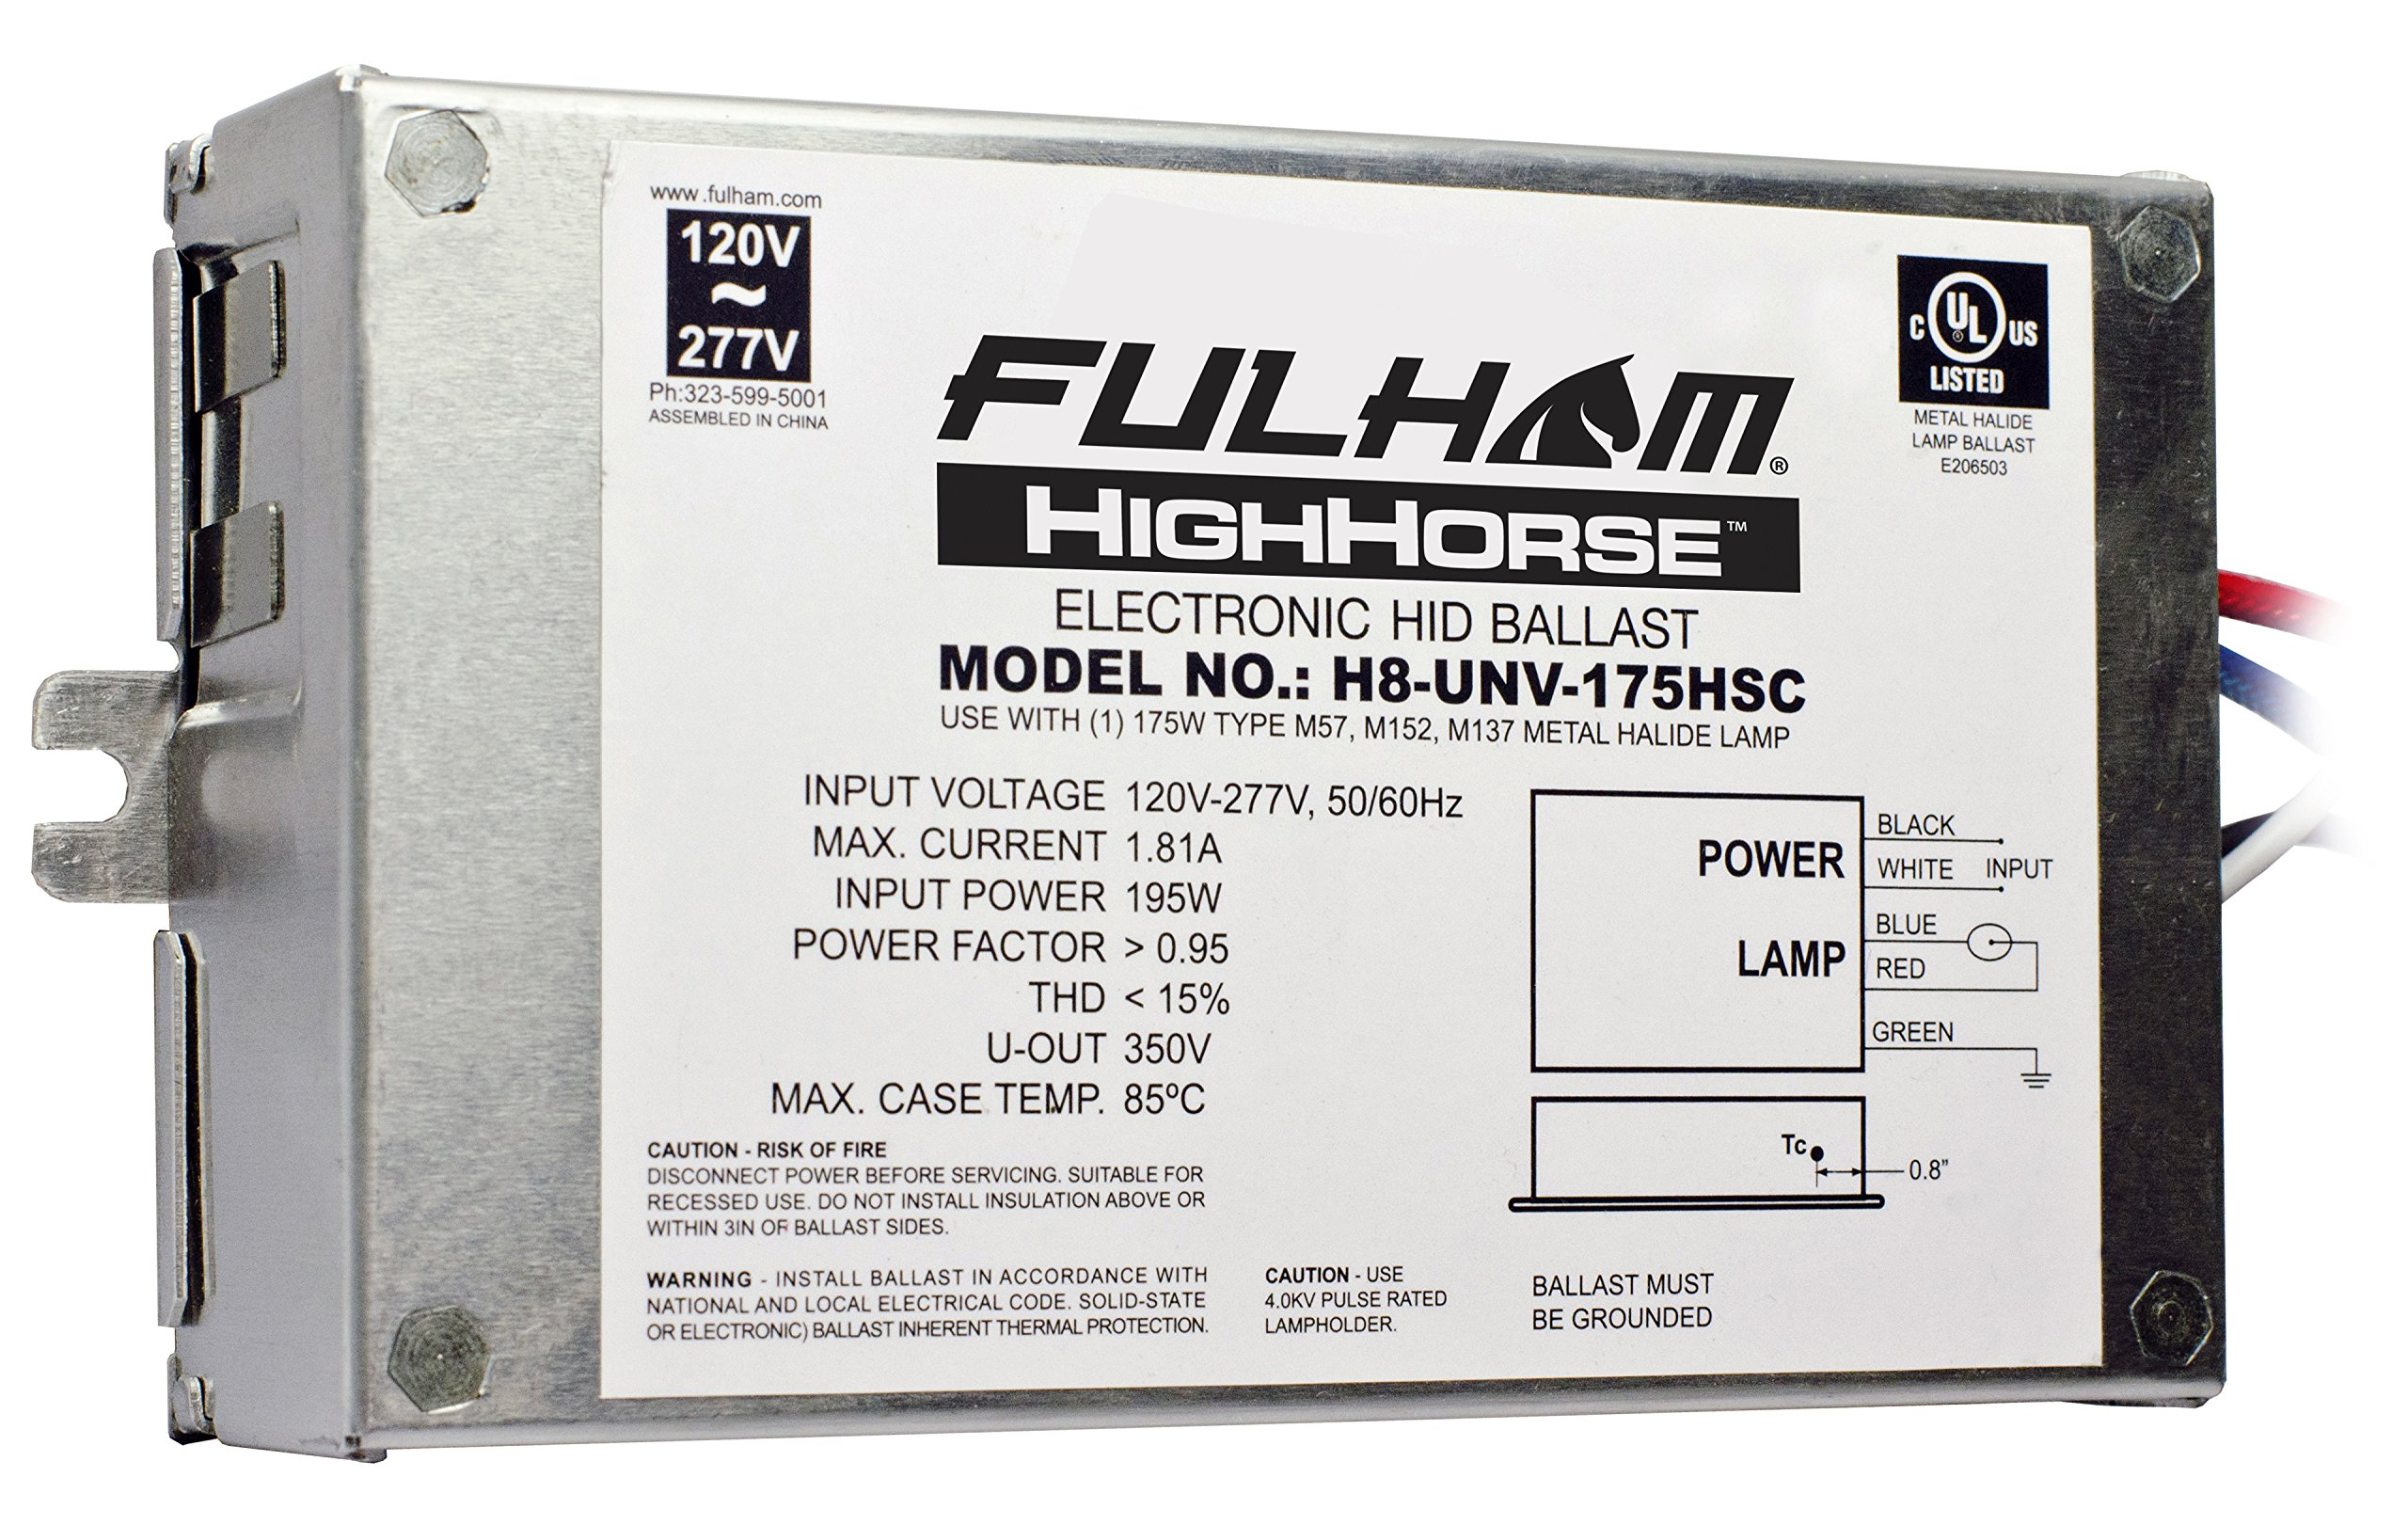 Fulham Electronic HID Ballast, H8-UNV-175HSC